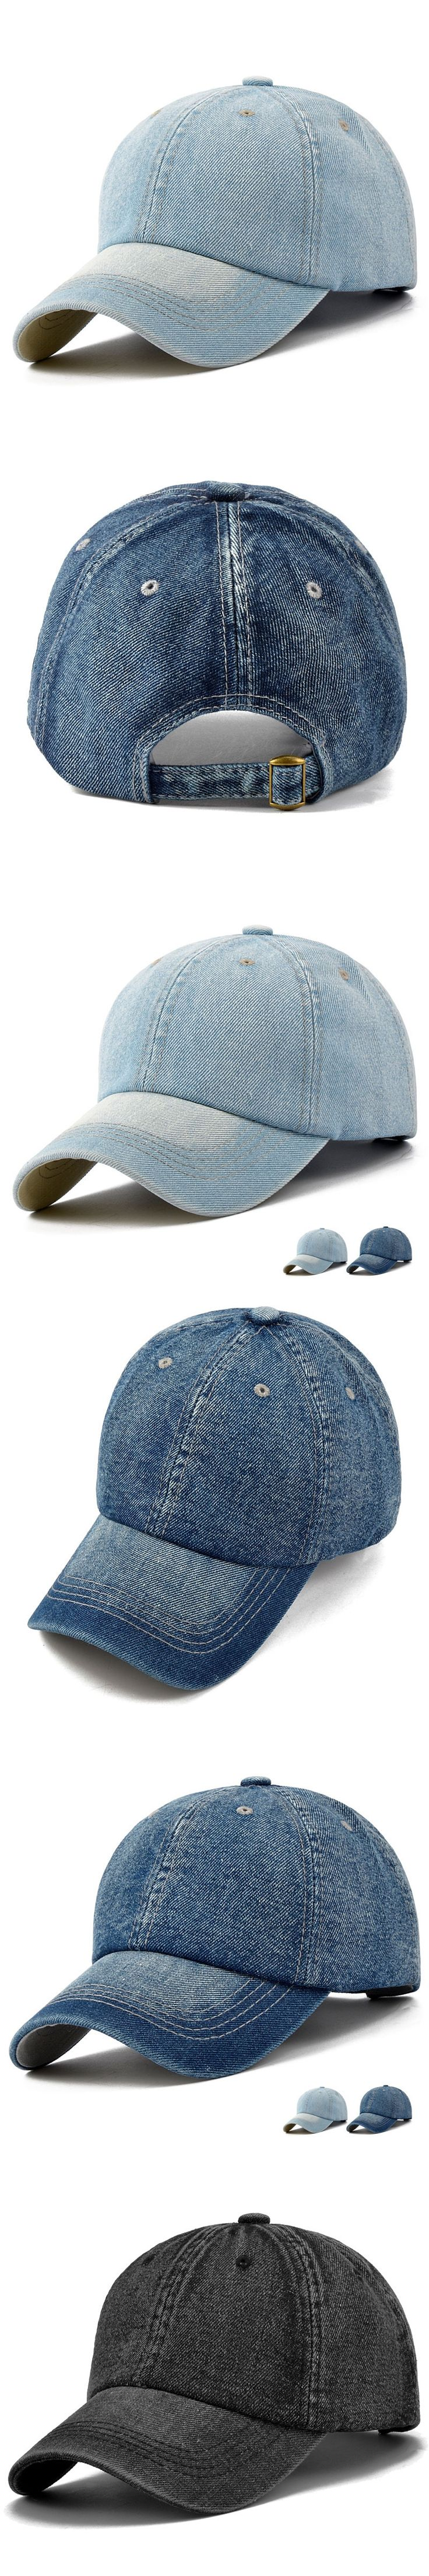 Solid Denim Baseball Caps Lovers Headwear Adult Outdoors Curved Sun Cap Men Women Plain Peaked Hat